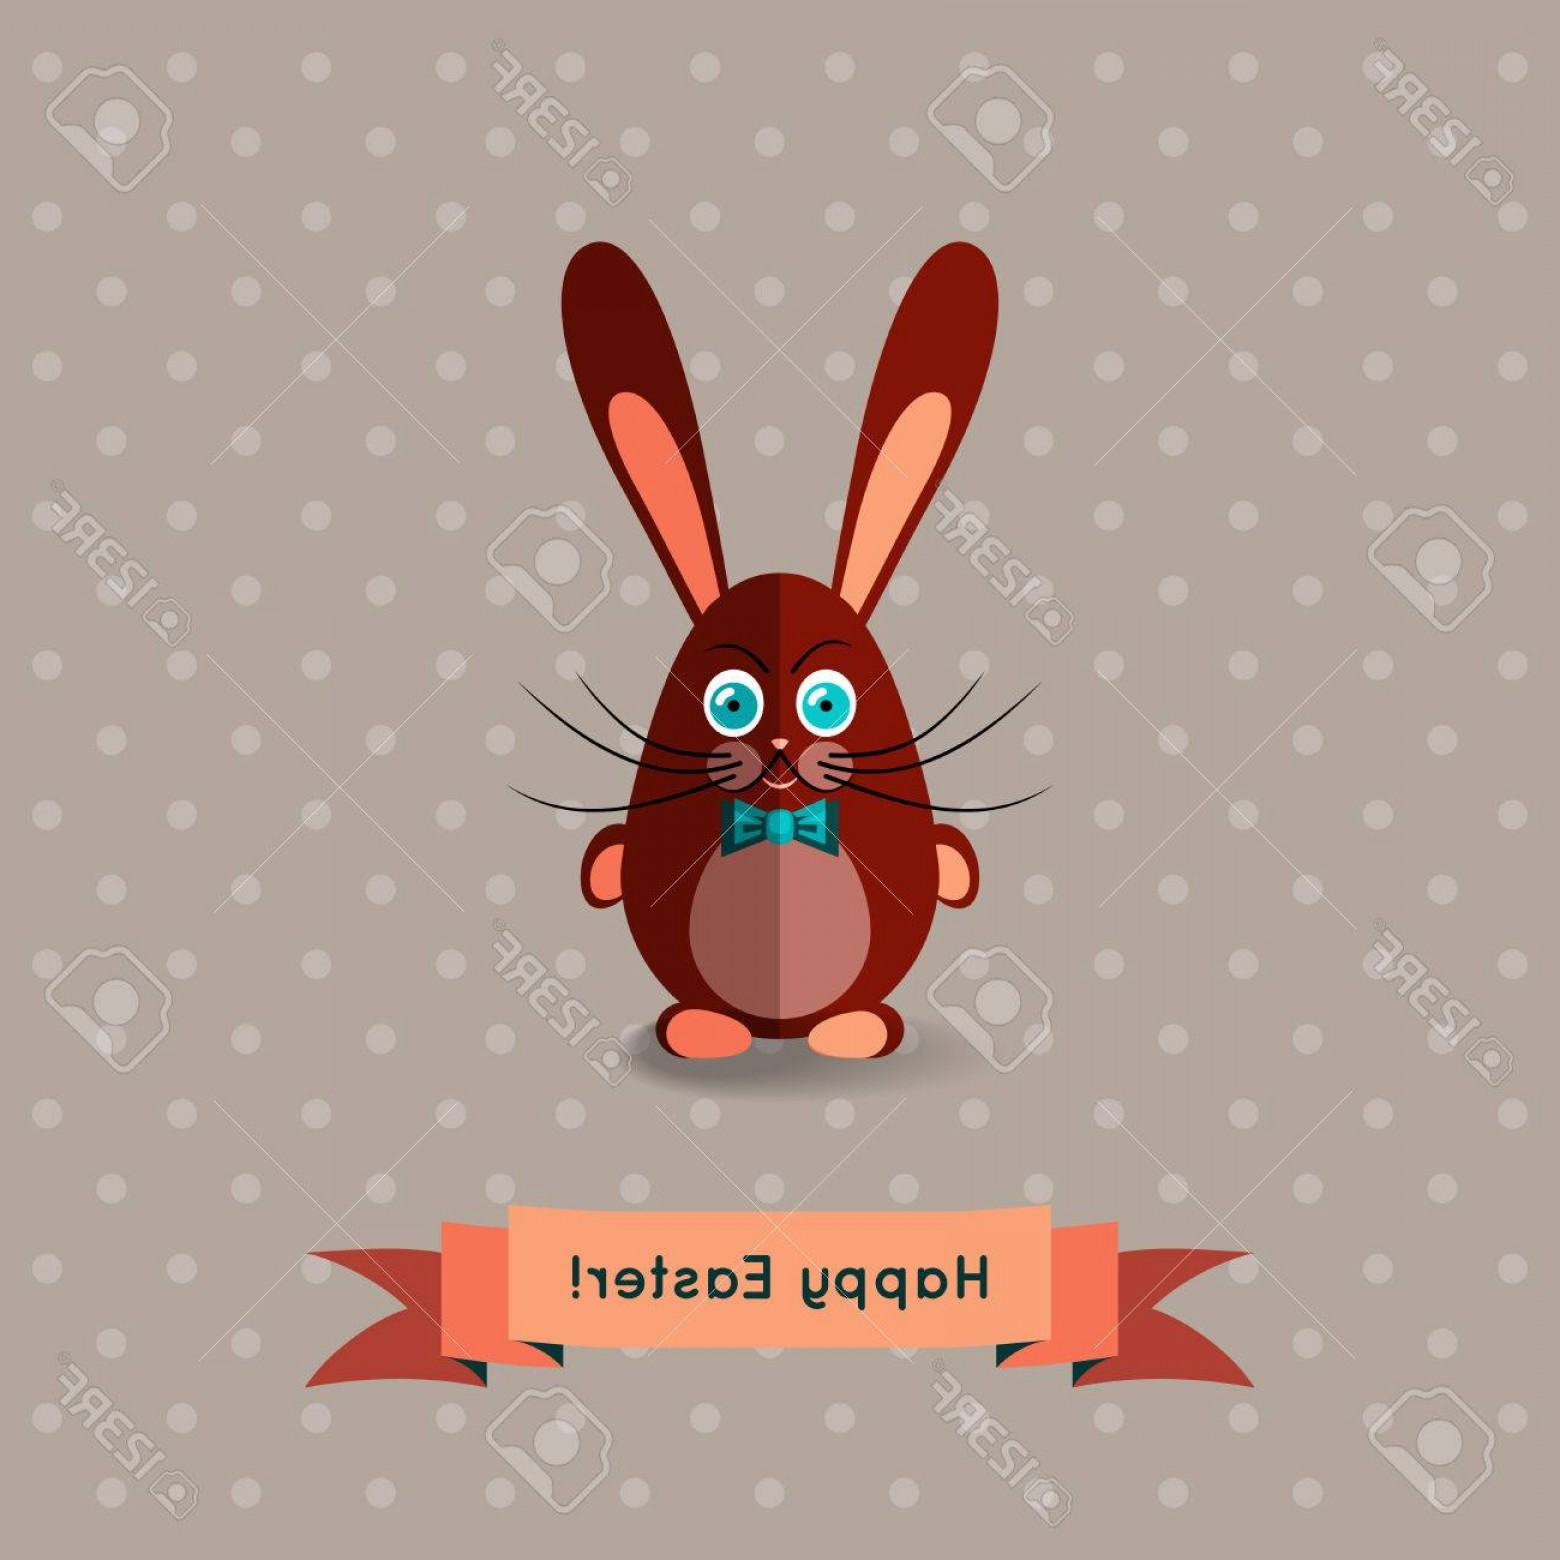 Chocolate Bunny Vector: Photostock Vector Sweet Chocolate Bunny Vector Template With Flat Design Happy Easter